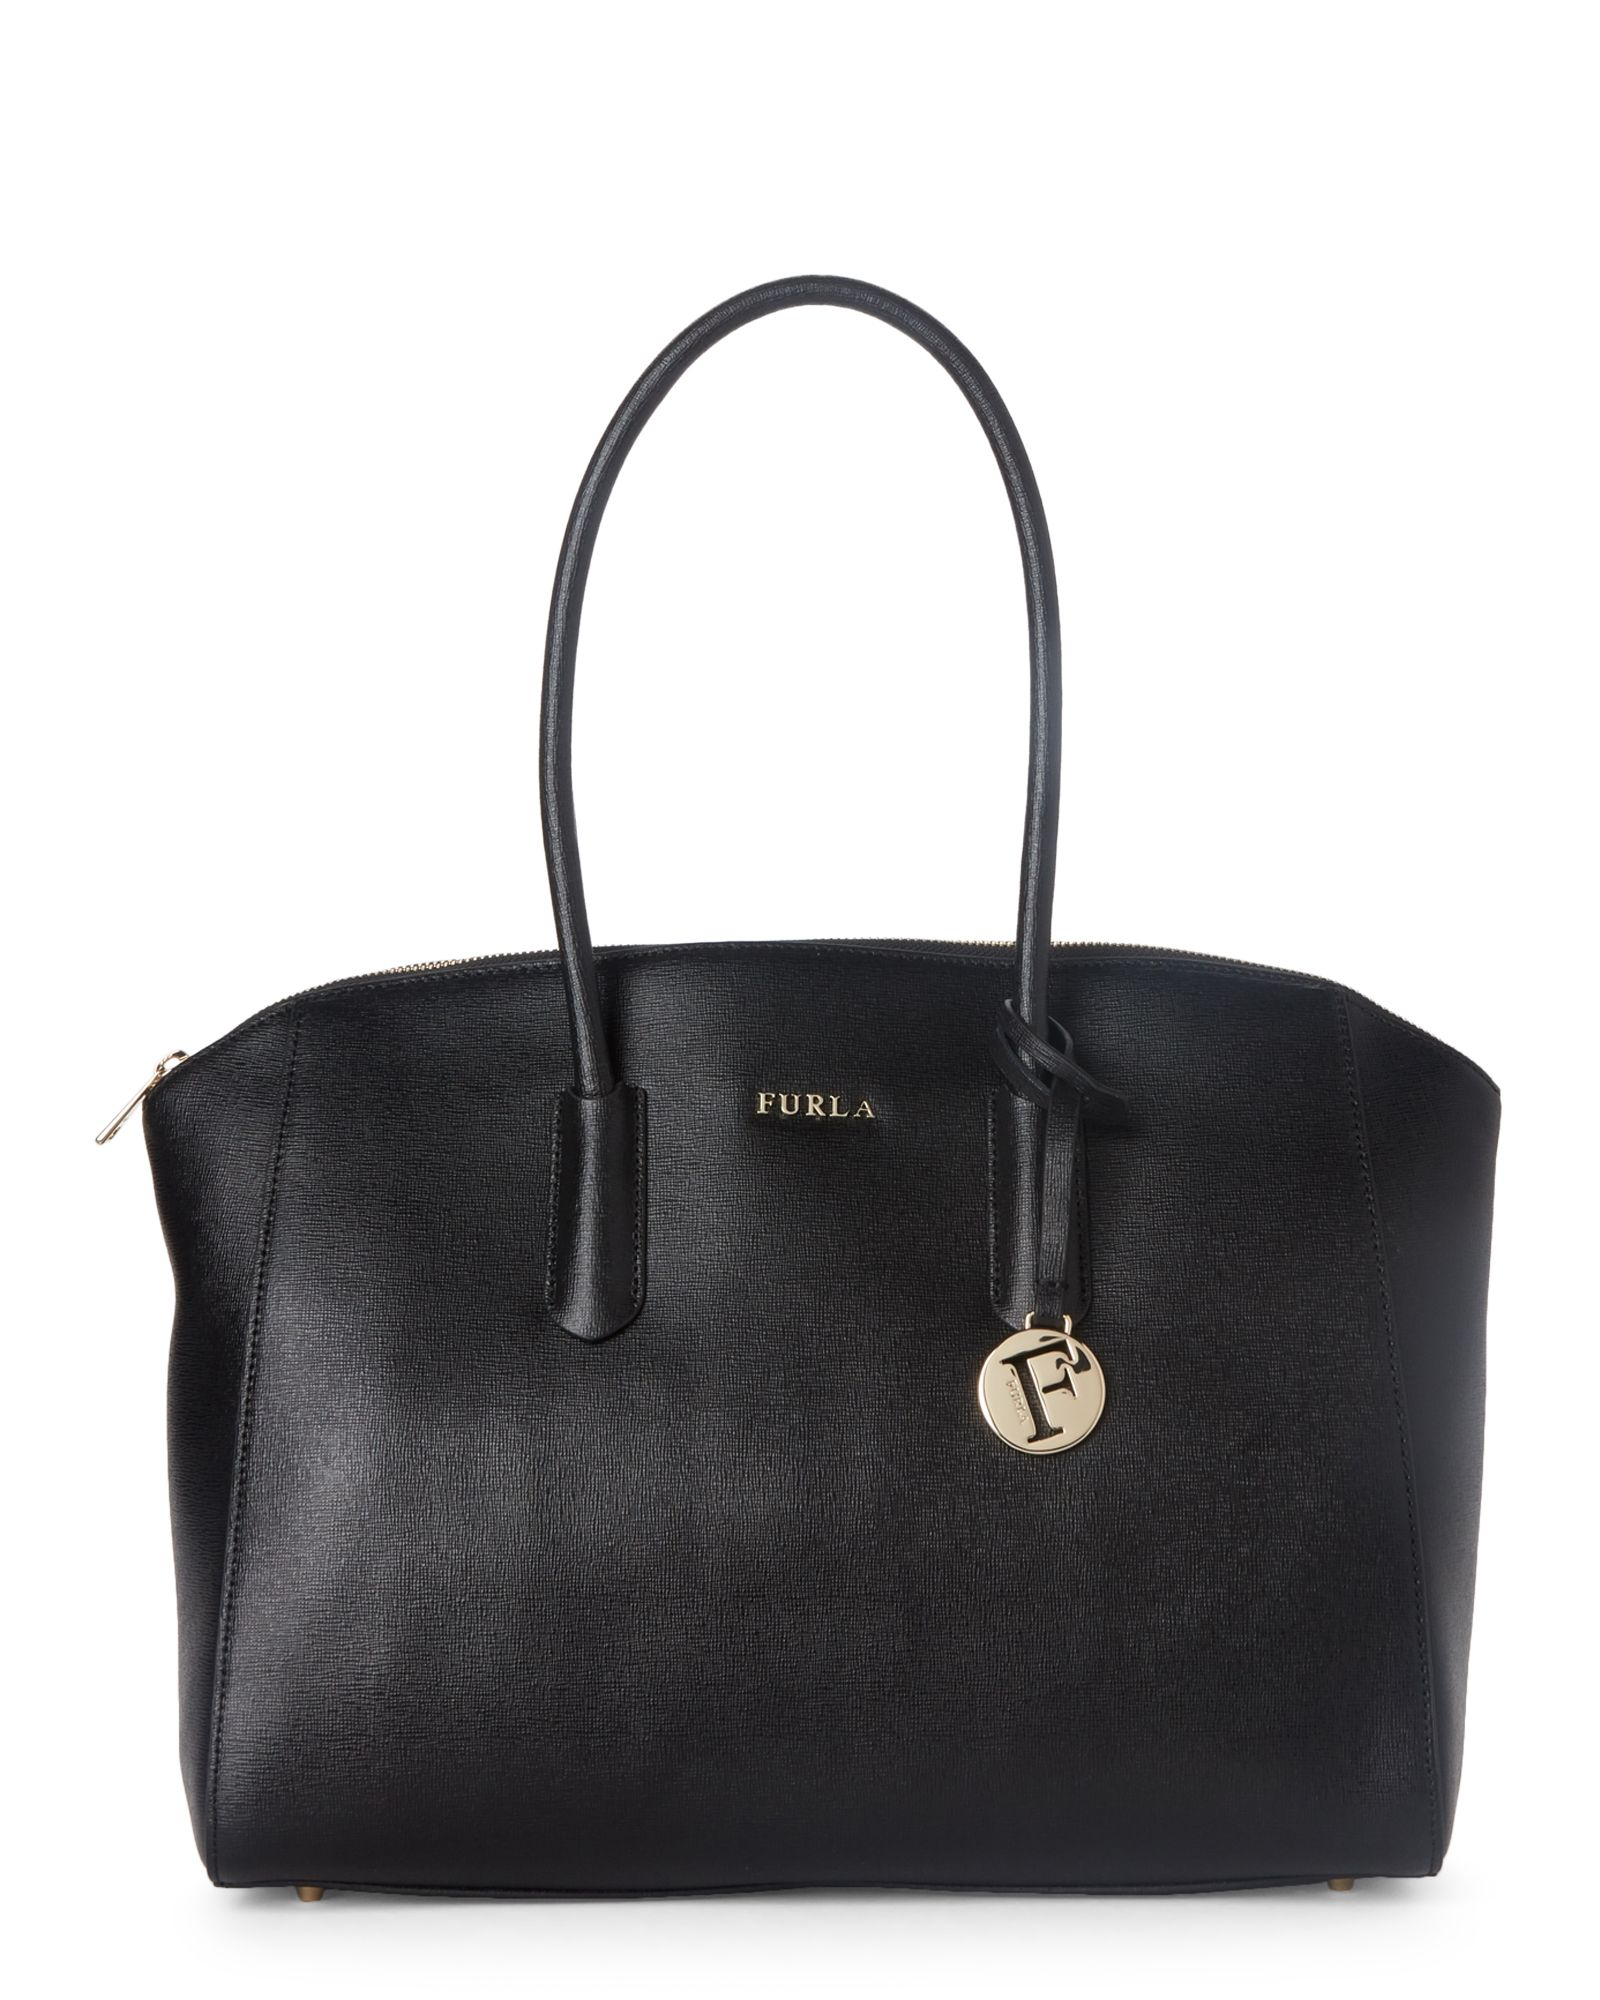 02bcfaf8b513 Black Tessa Large Leather Tote in 2019 | *Apparel & Accessories ...